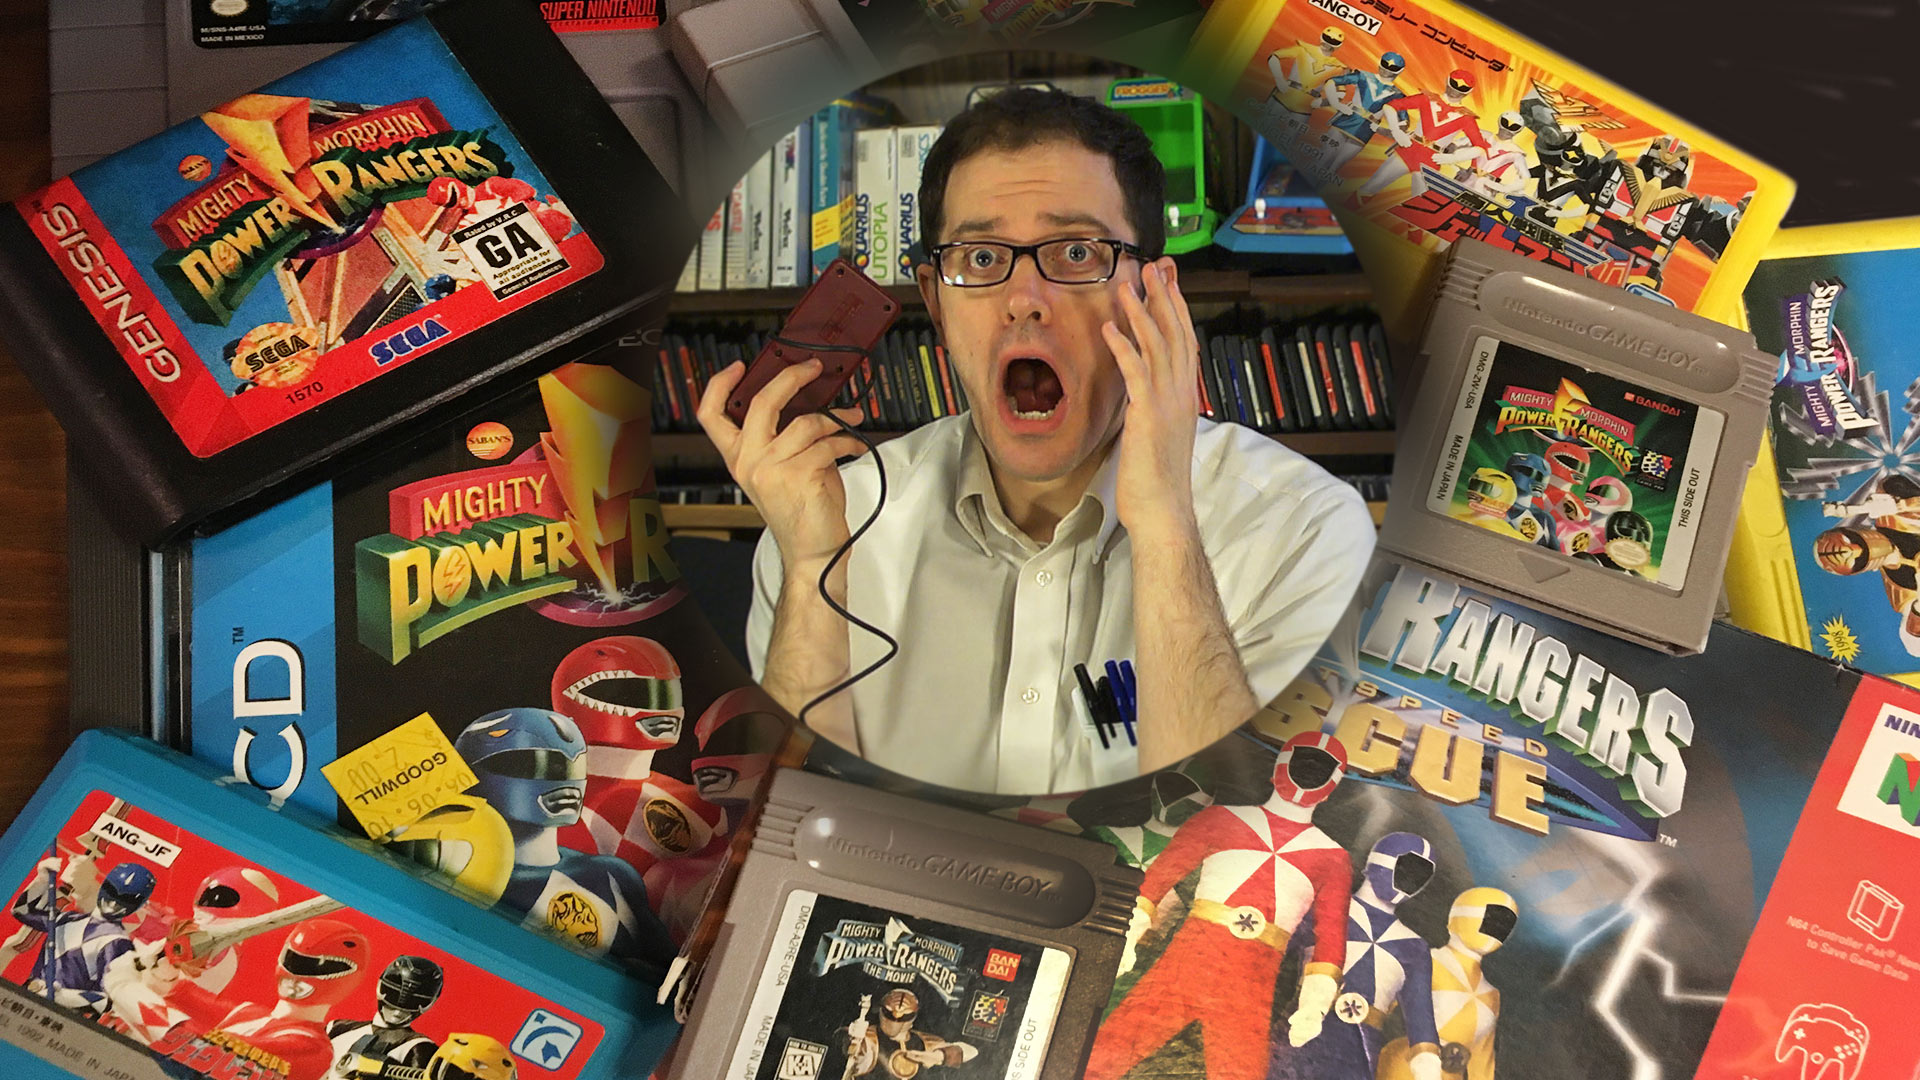 Angry Video Game Nerd Wikipedia